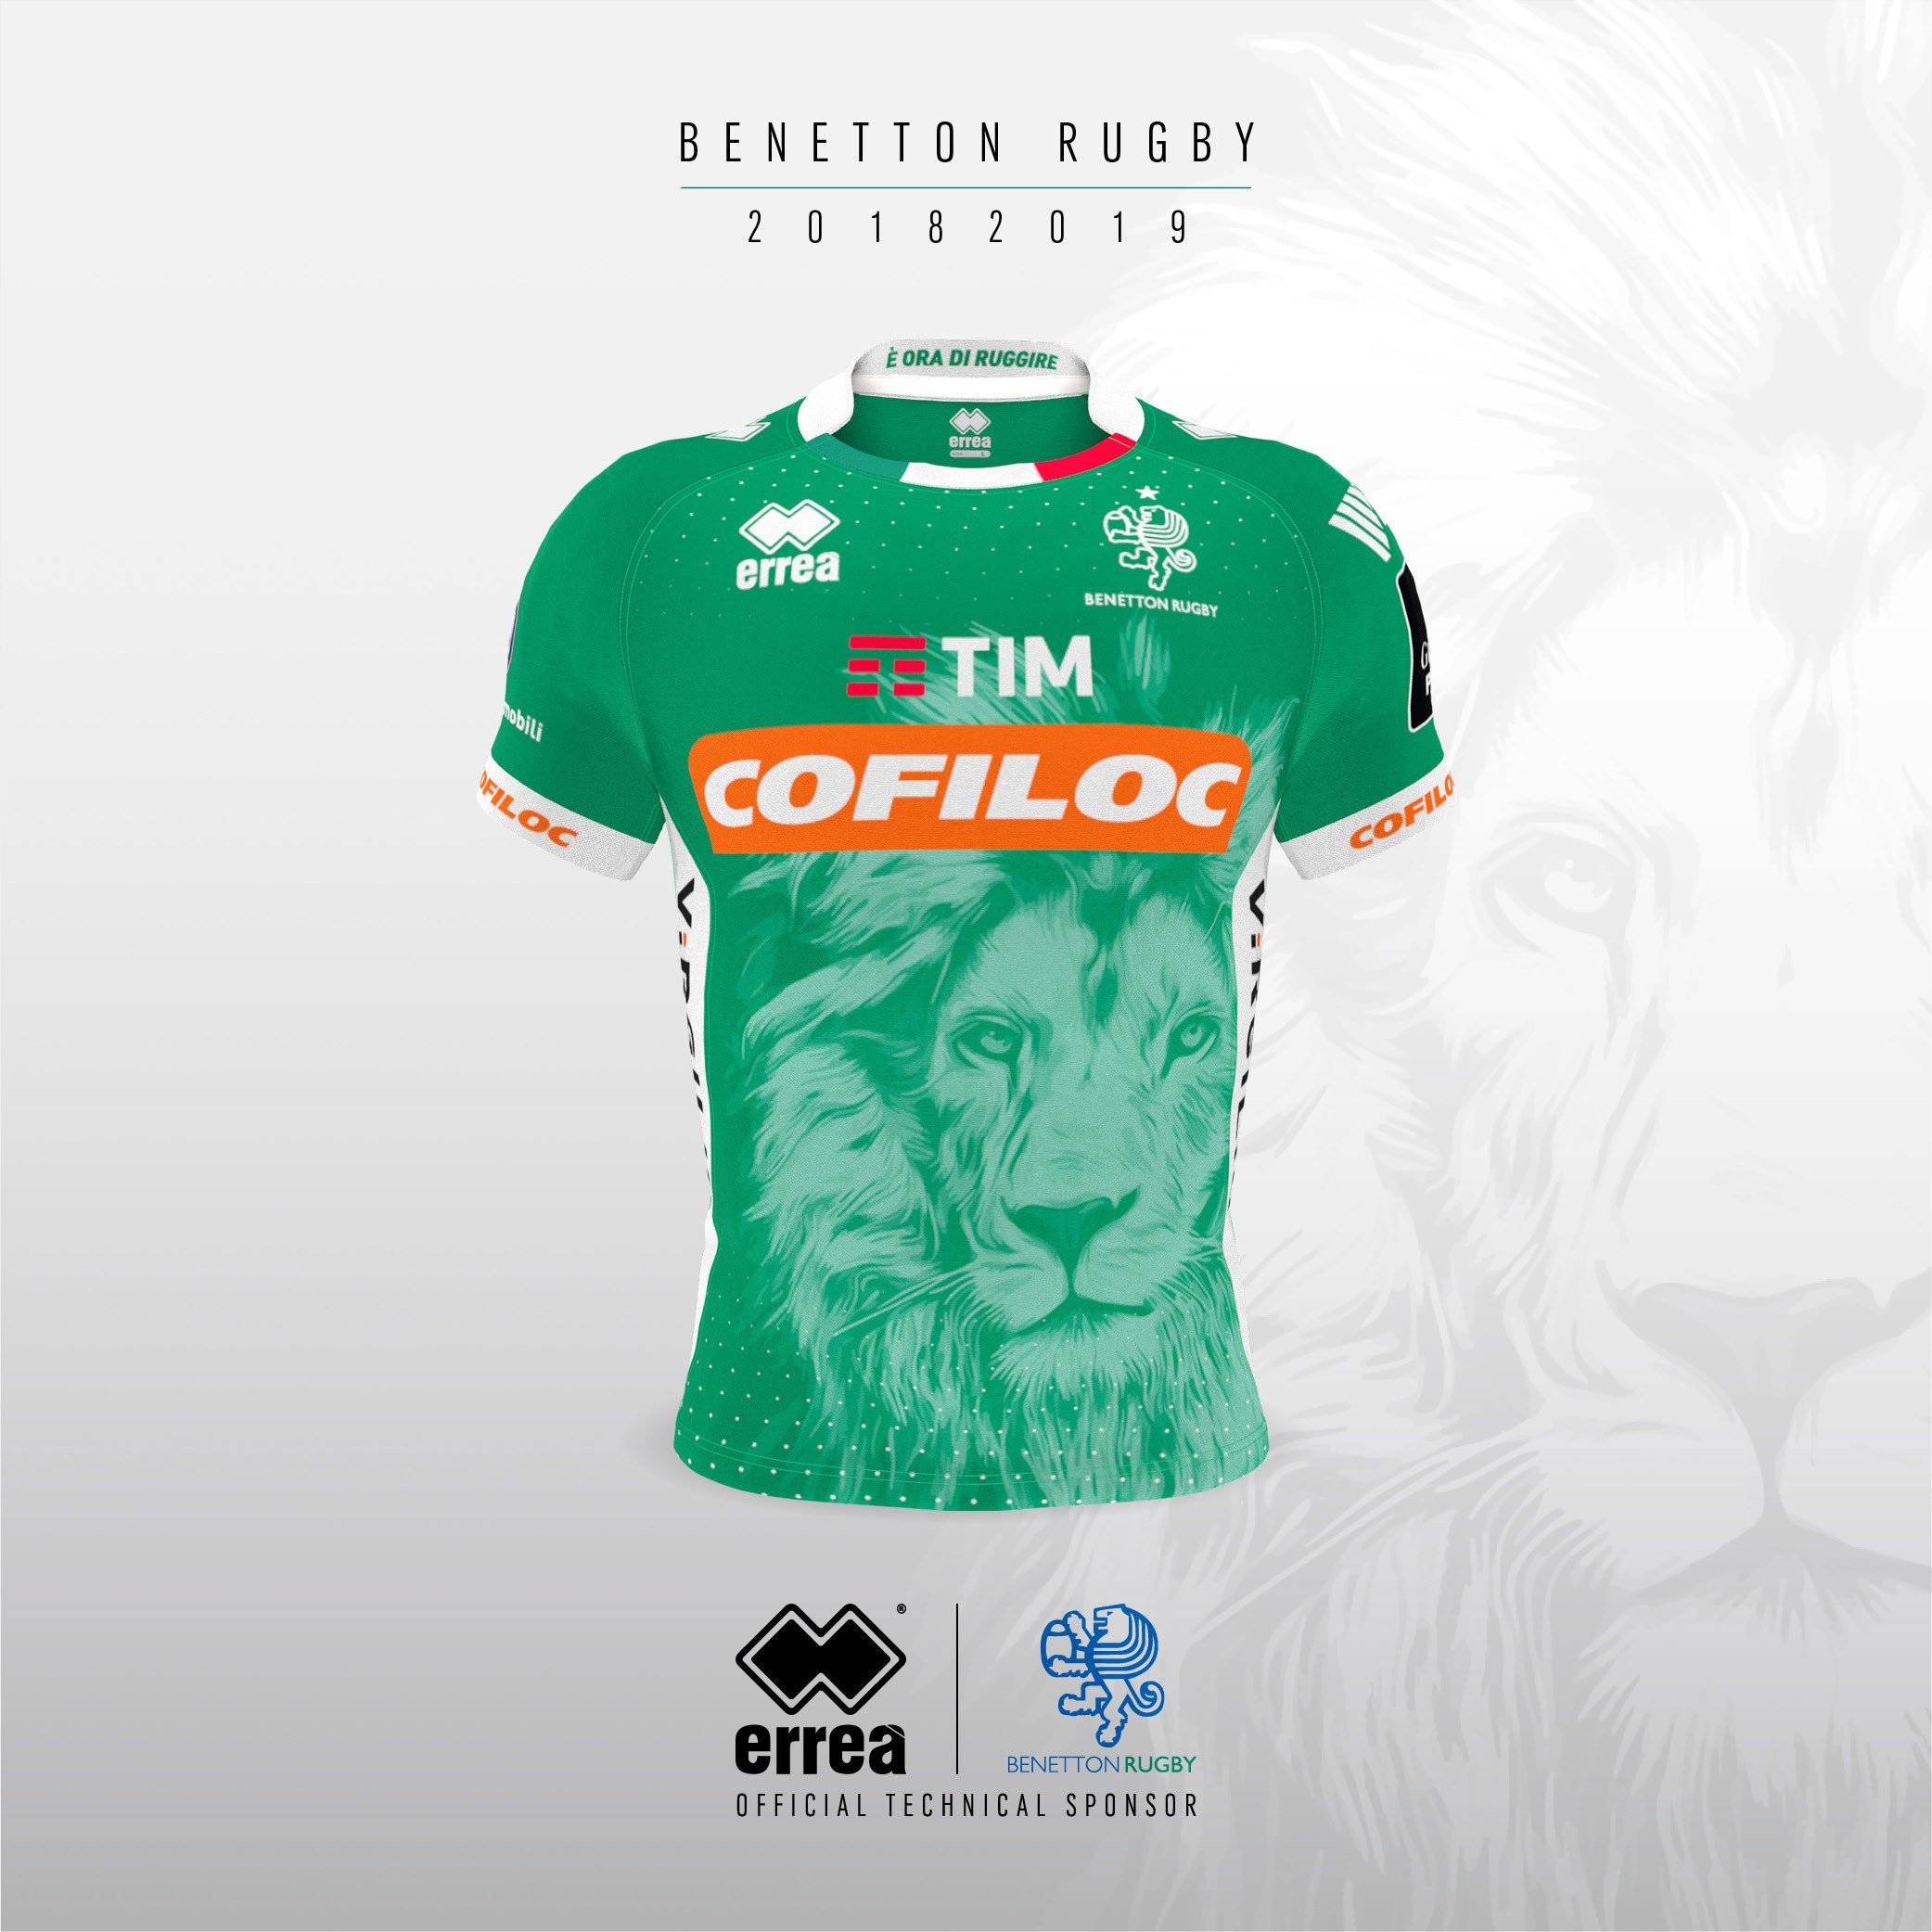 Erreà and Benetton Rugby unveil the new official kits for the forthcoming Guinness Pro 14 season